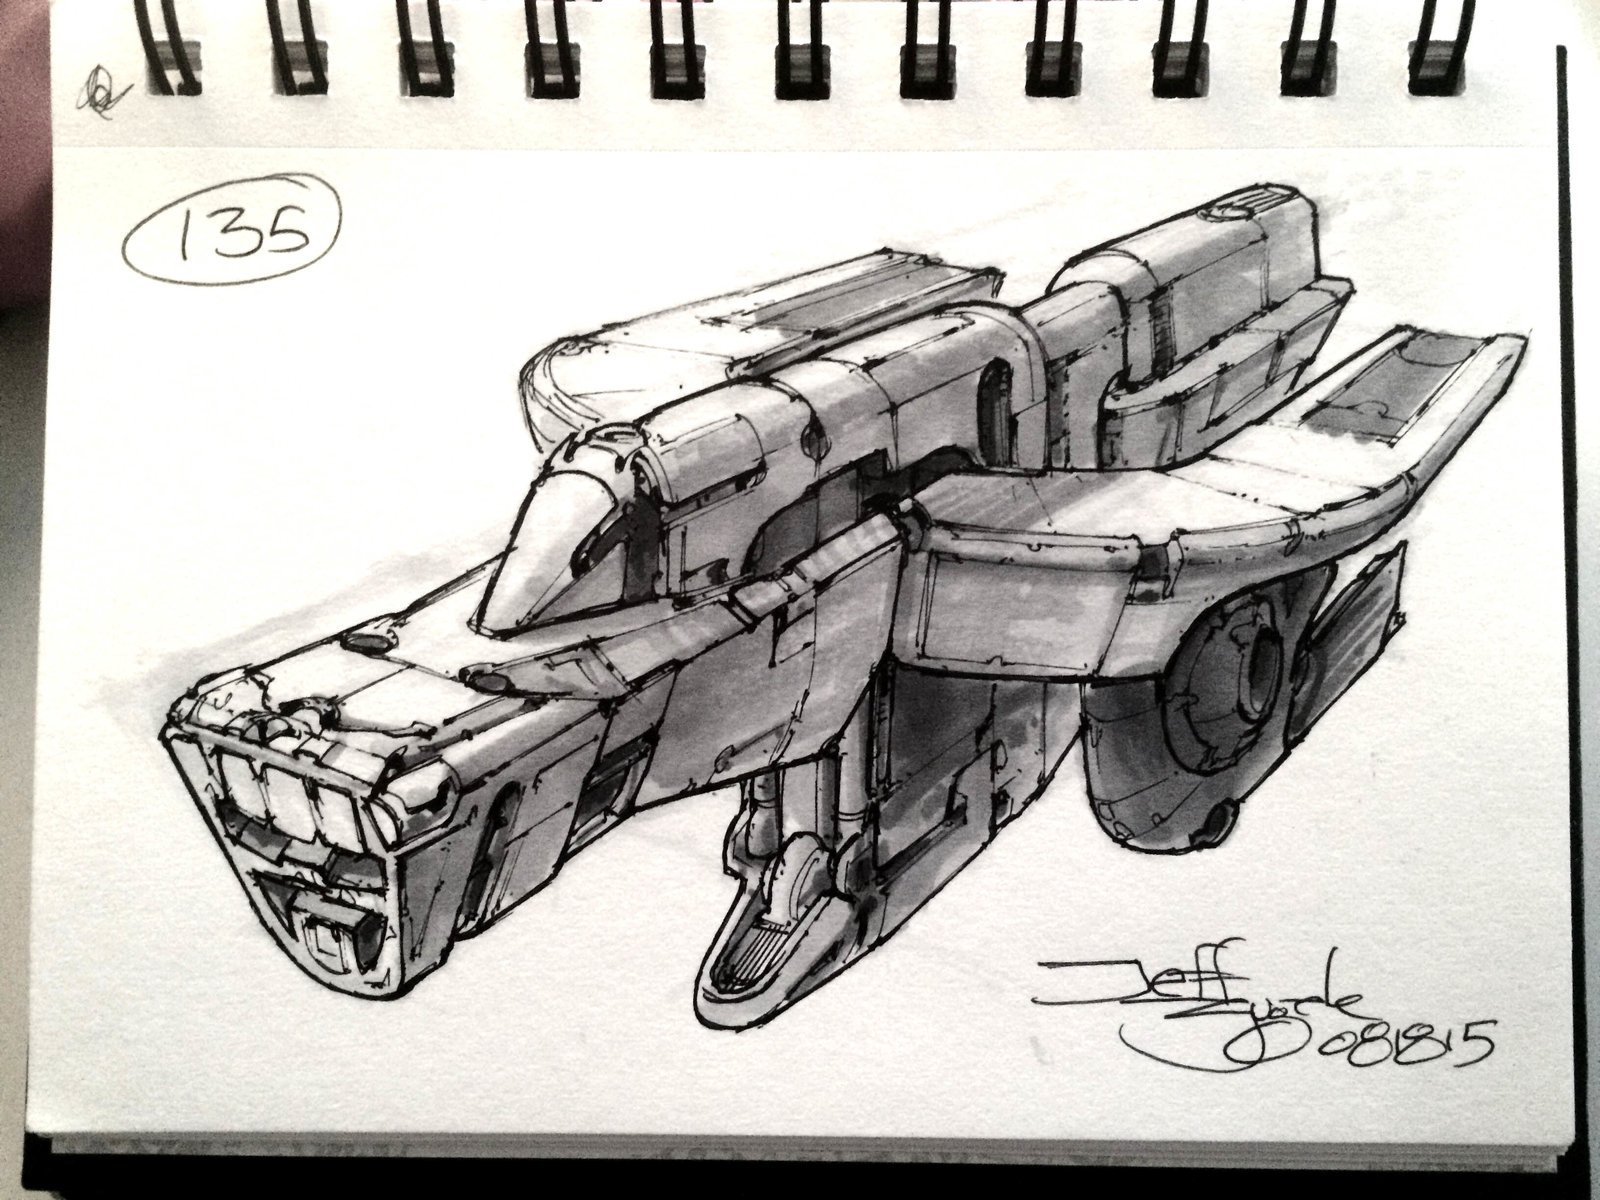 SpaceshipADay 135